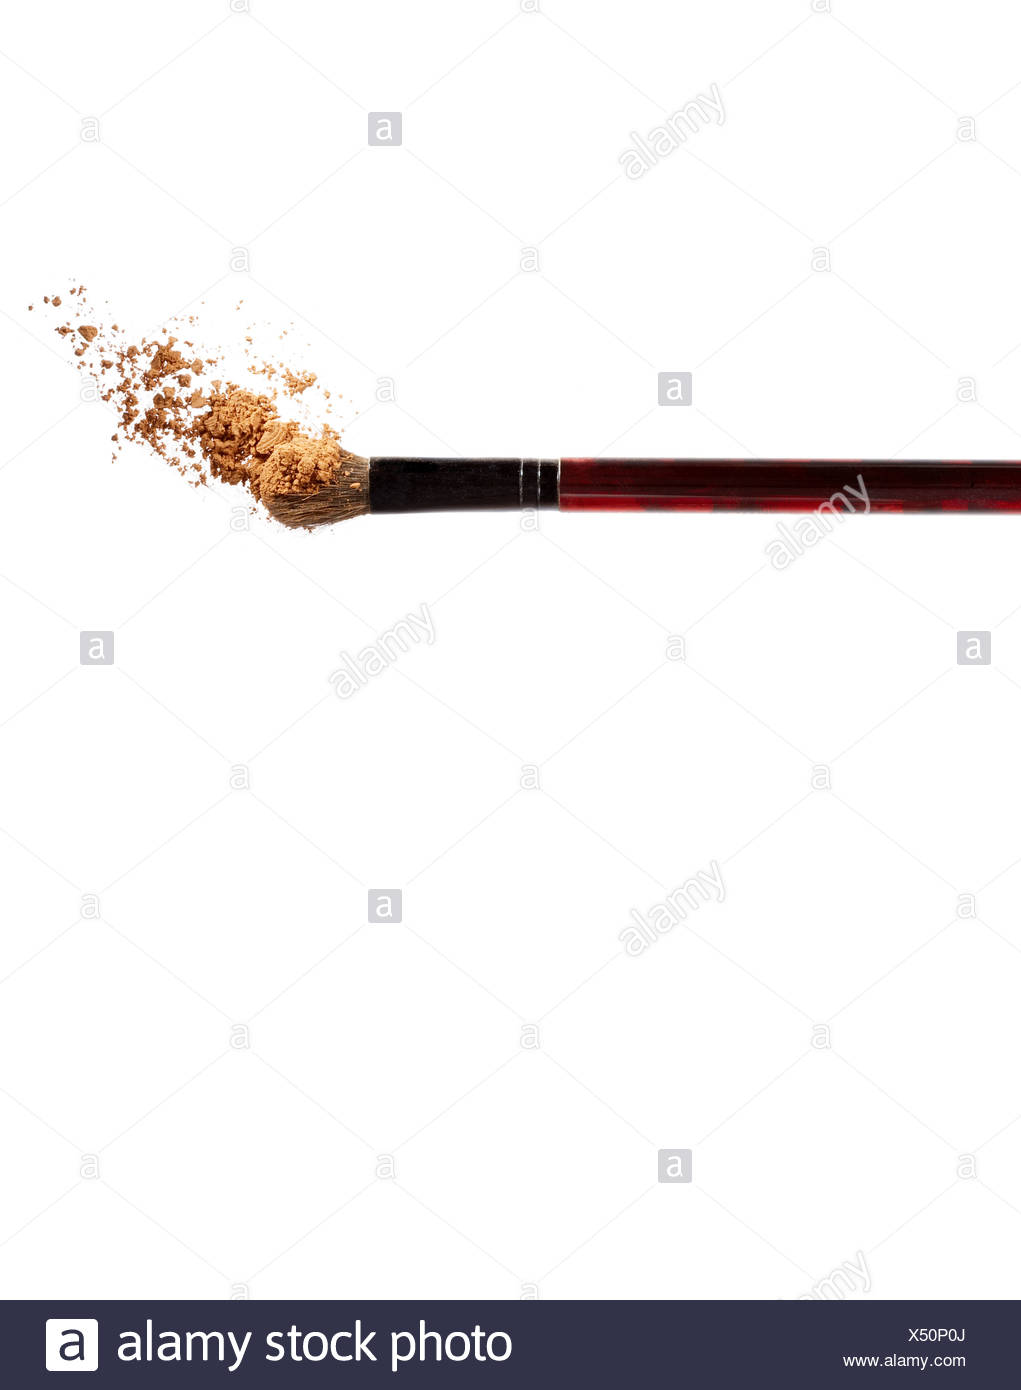 Make-up brush and cosmetic powder - Stock Image